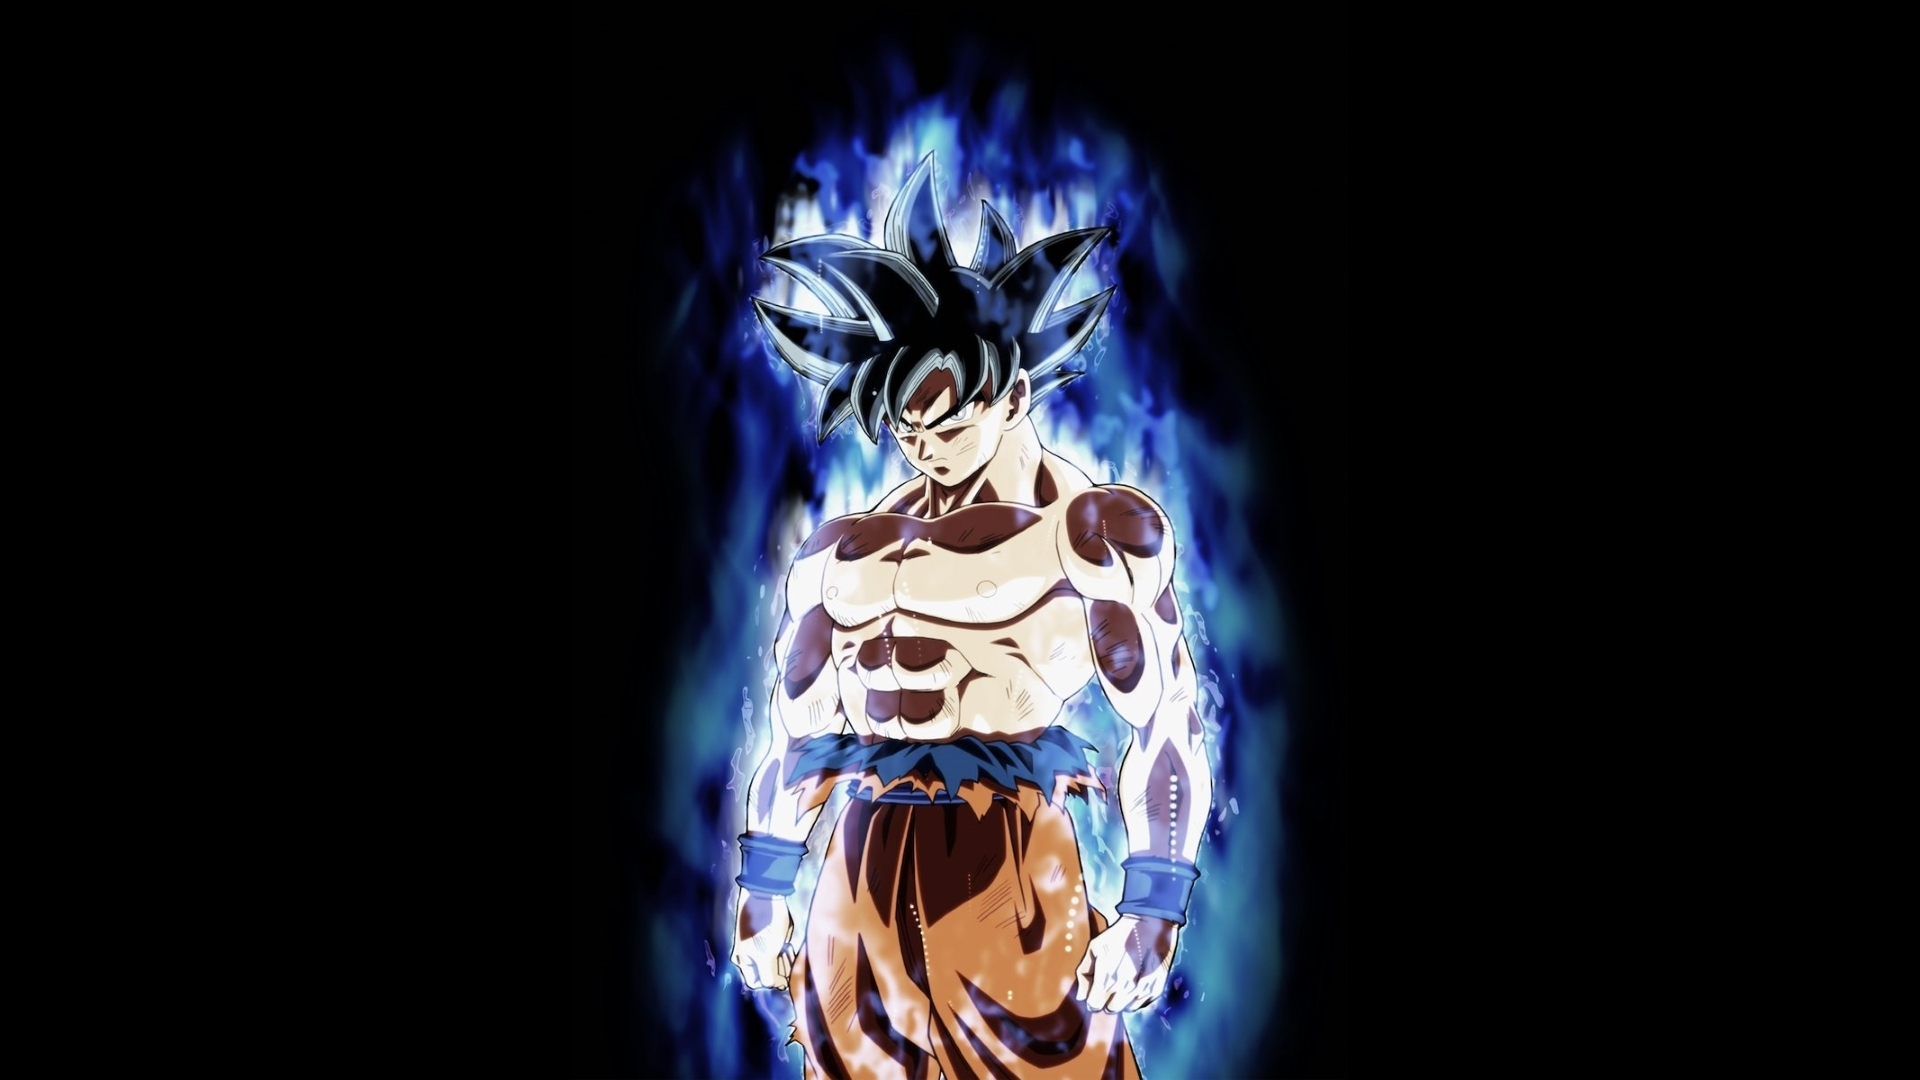 son goku, #dragon ball, #dragon ball super, #ultra-instinct goku